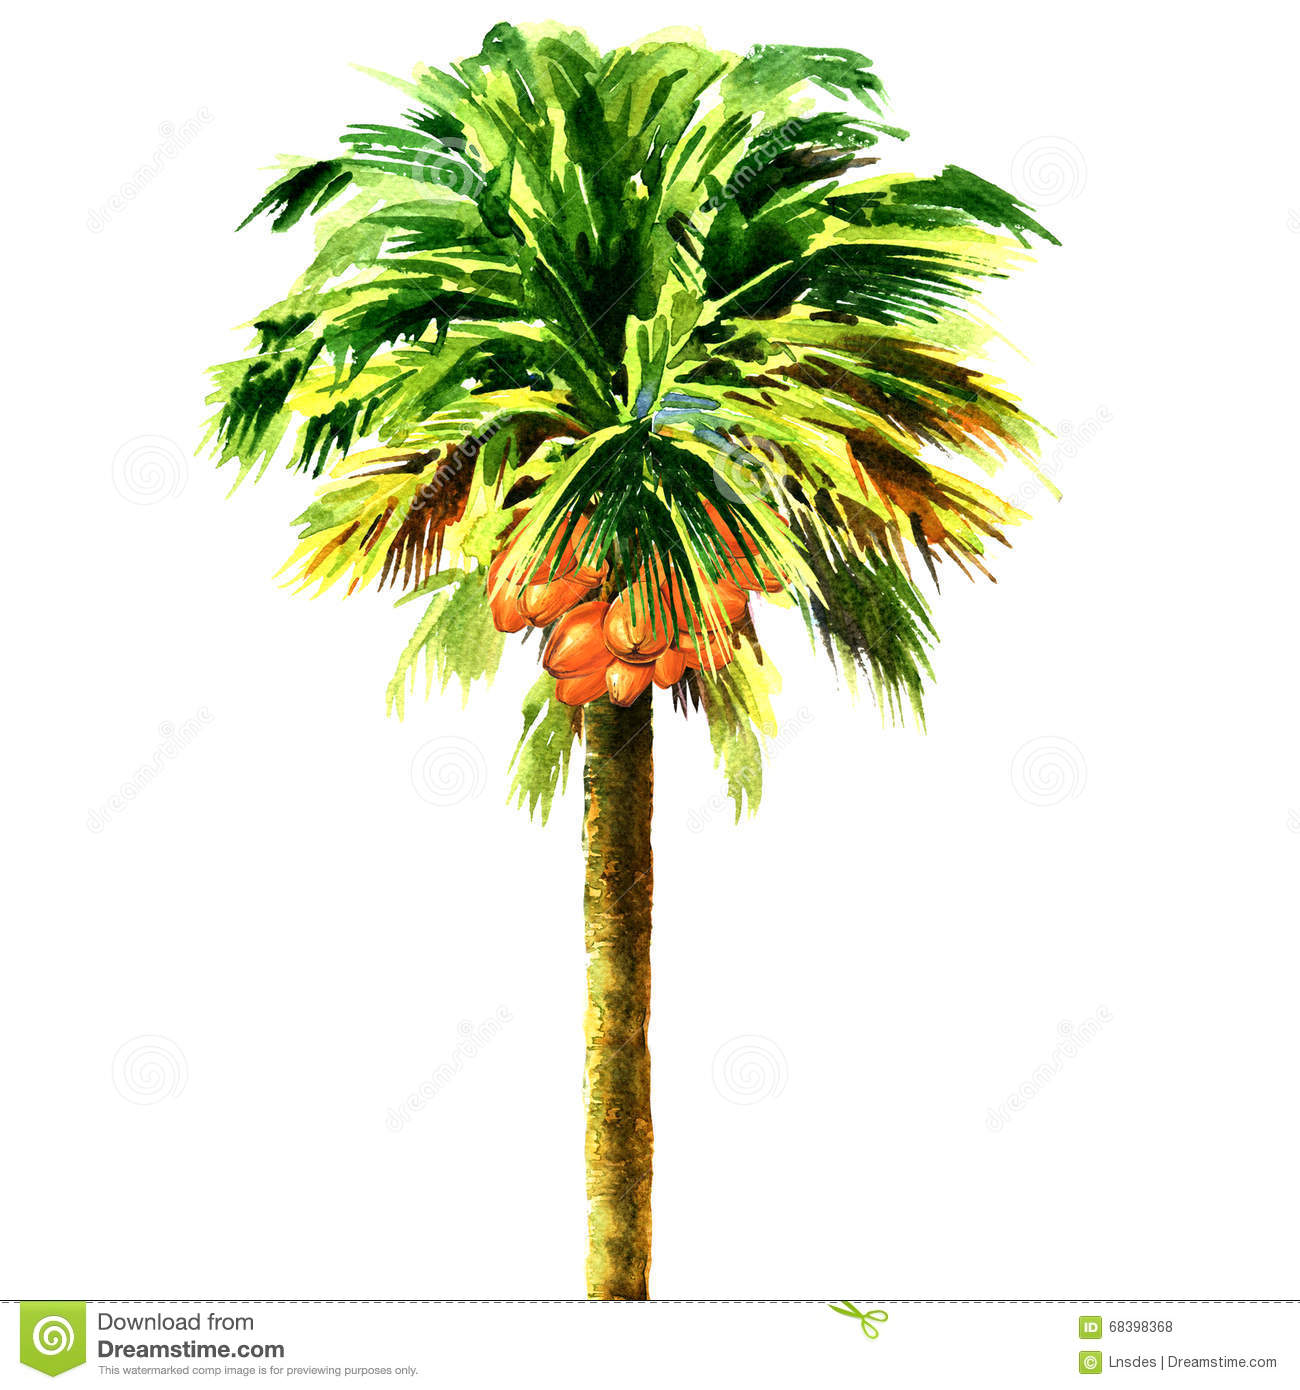 Coconut palm tree isolated, watercolor illustration